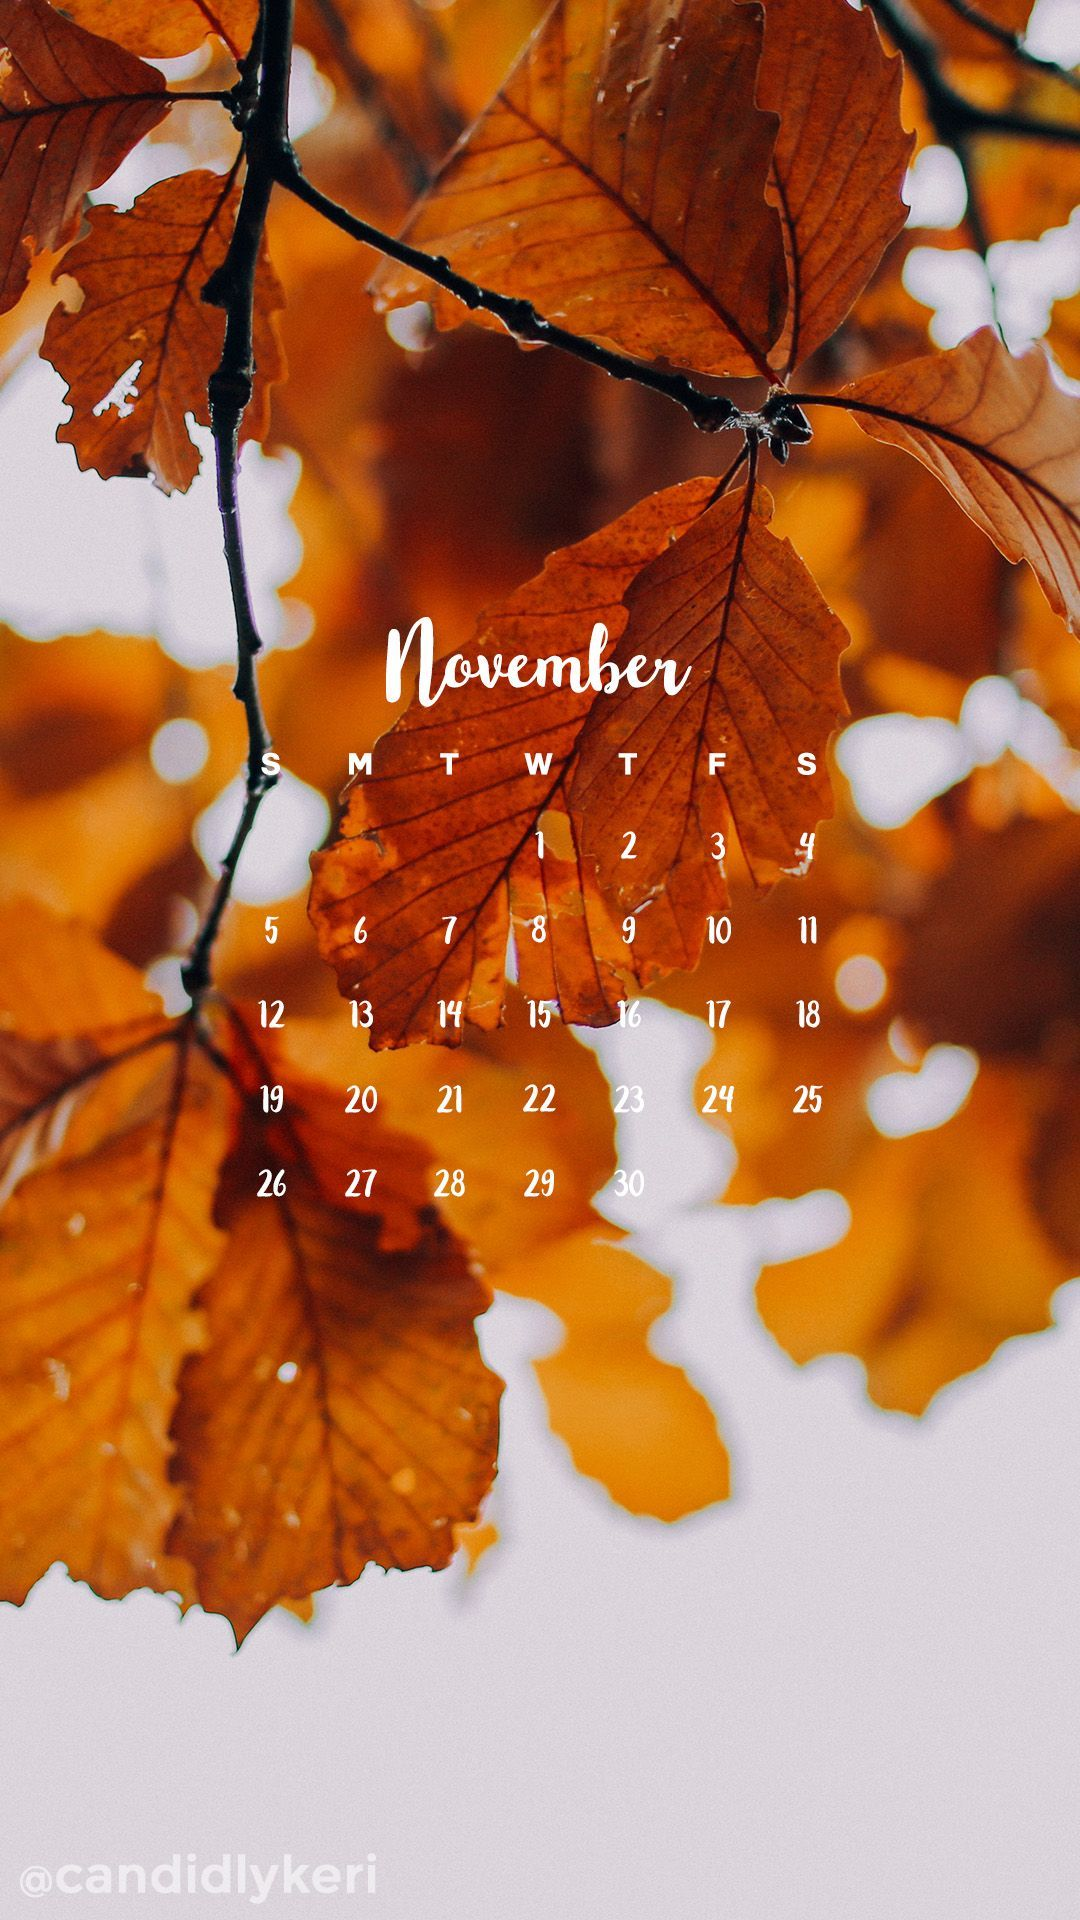 Golden Changing Fall Leaves November Calendar Wallpaper You Can Downlo